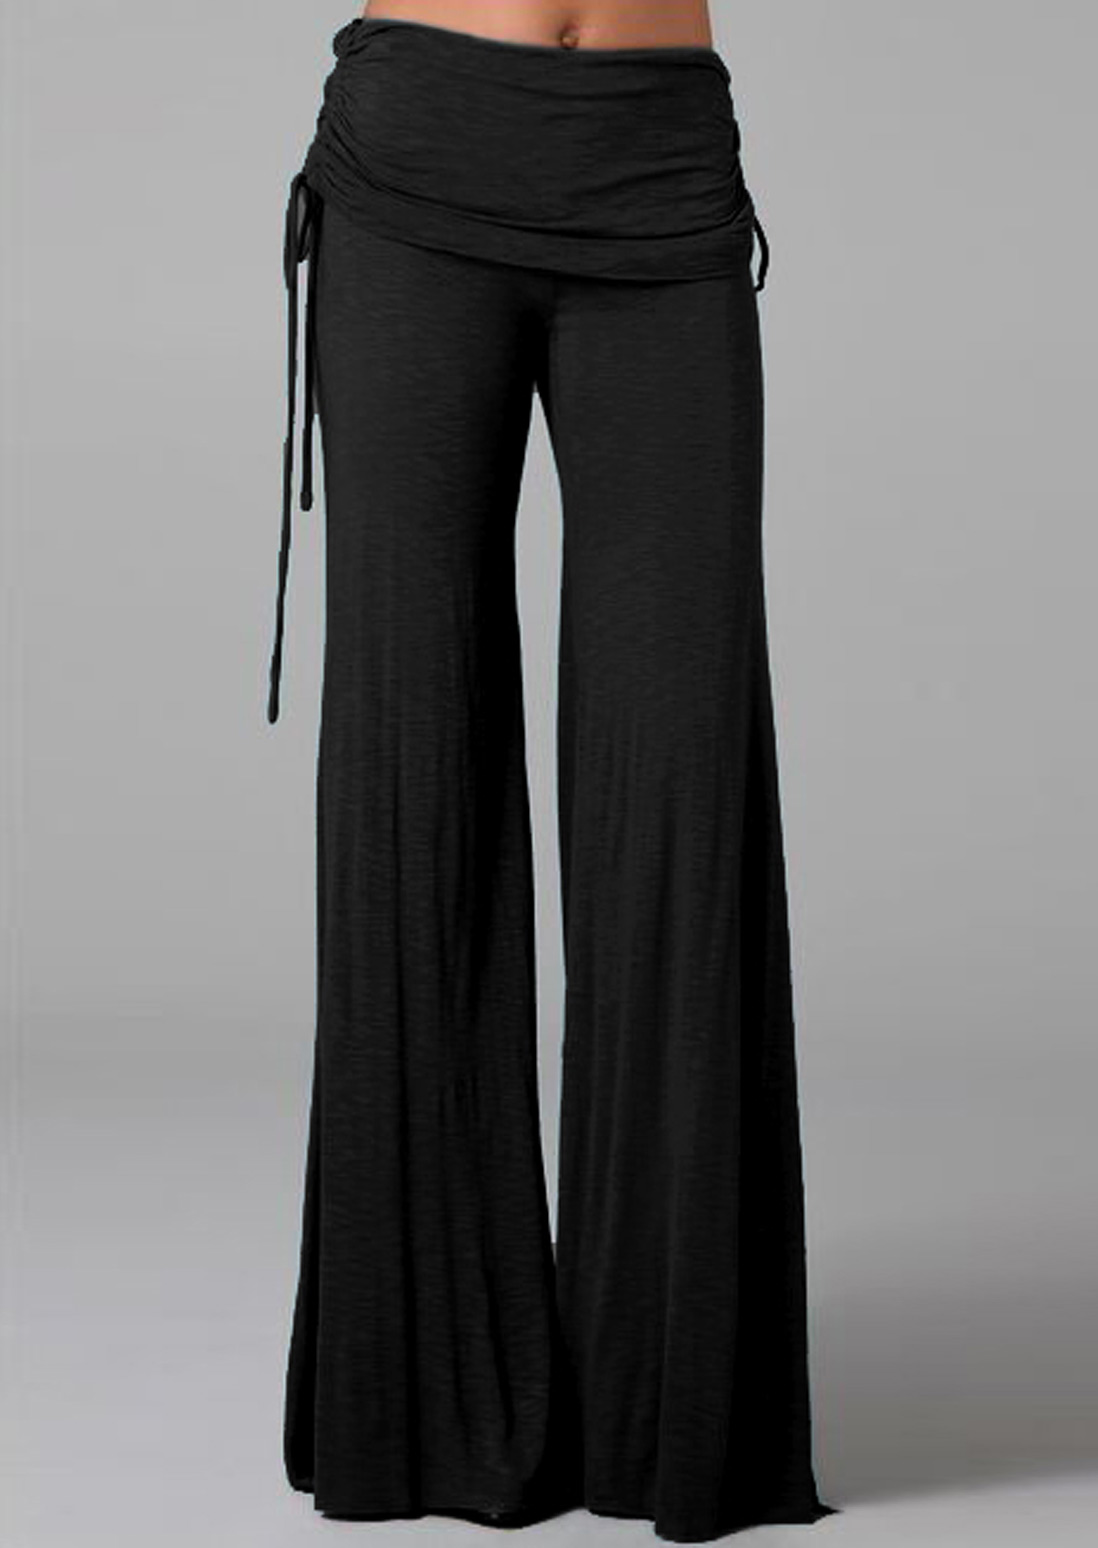 Solid Elastic Waist Wide Leg Pants - Fairyseason